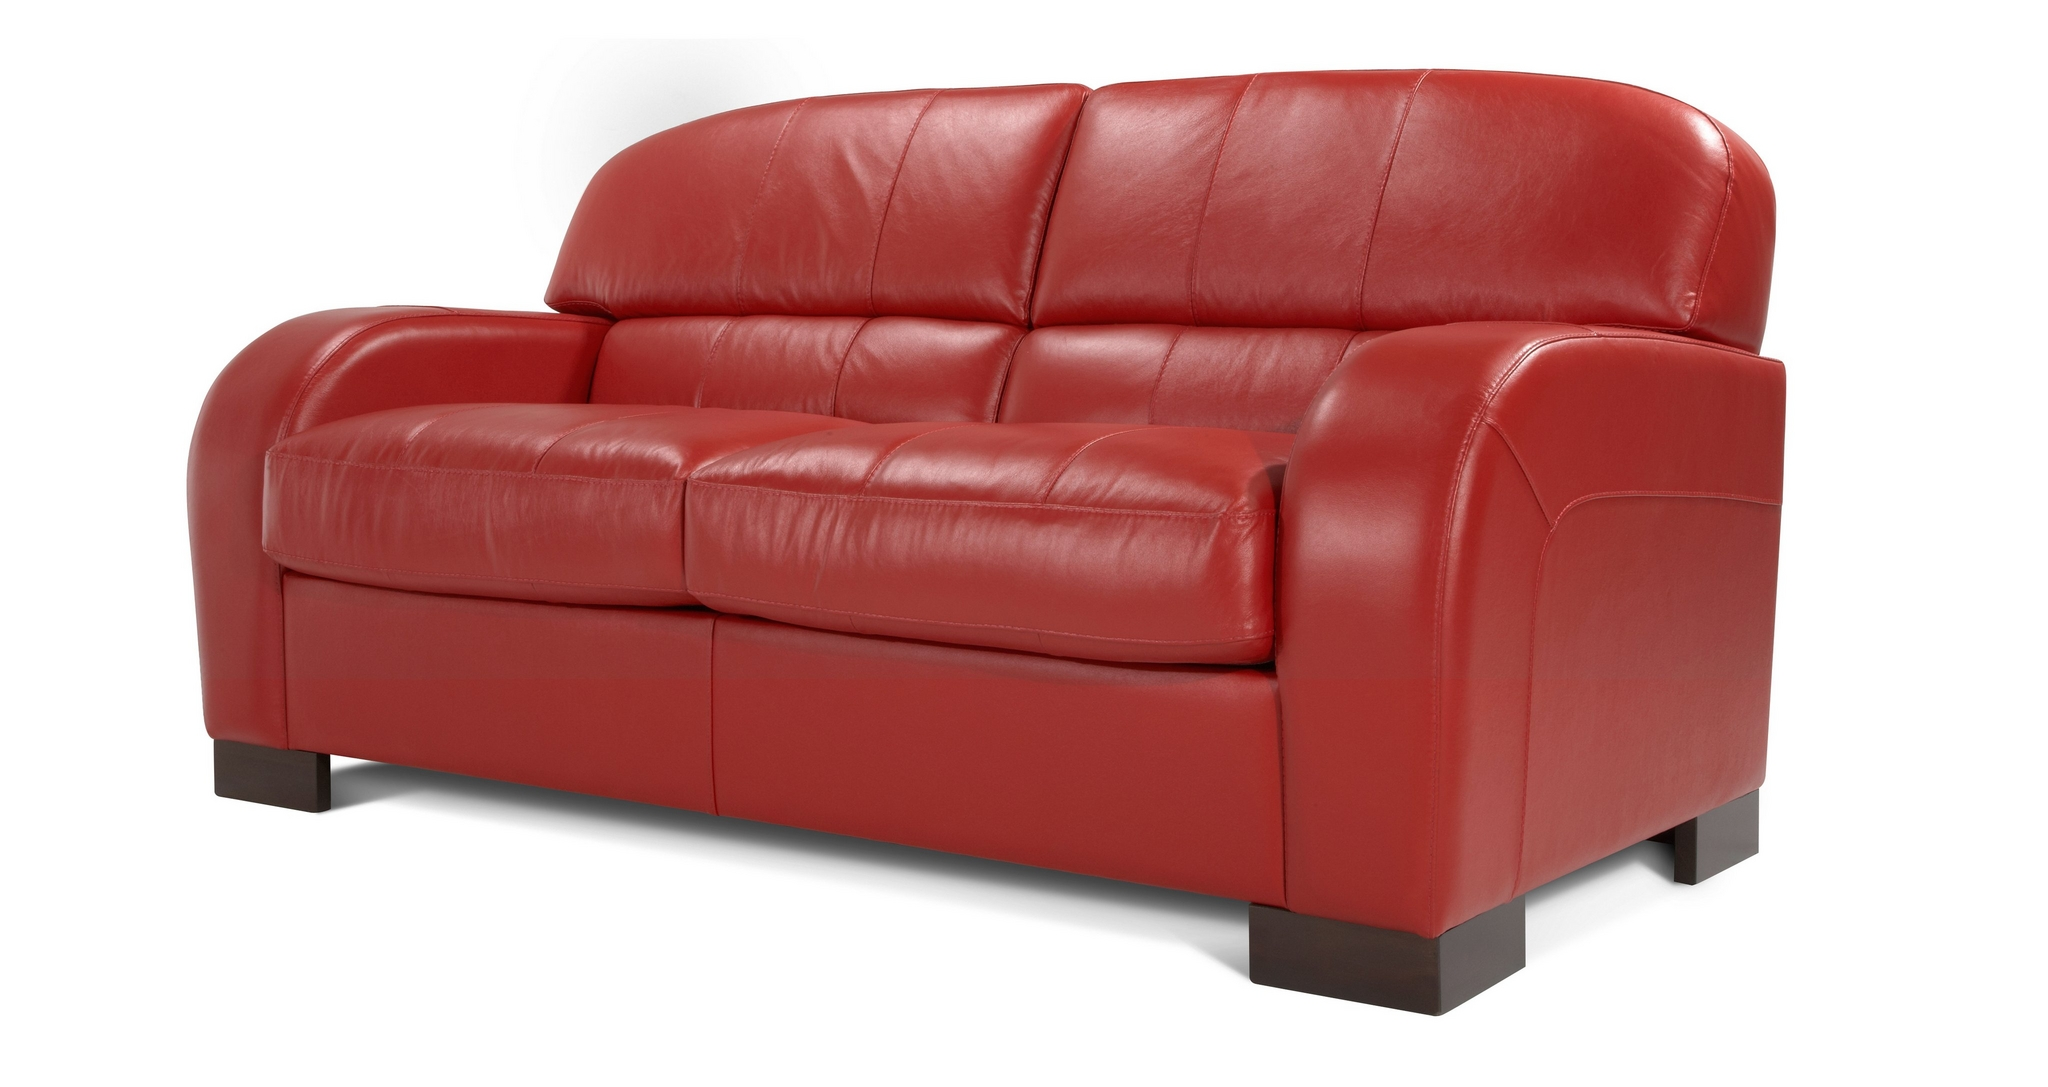 Dfs Leather Sofa Bed New Blaze Enzo Red 2 Seater Sofa Ebay